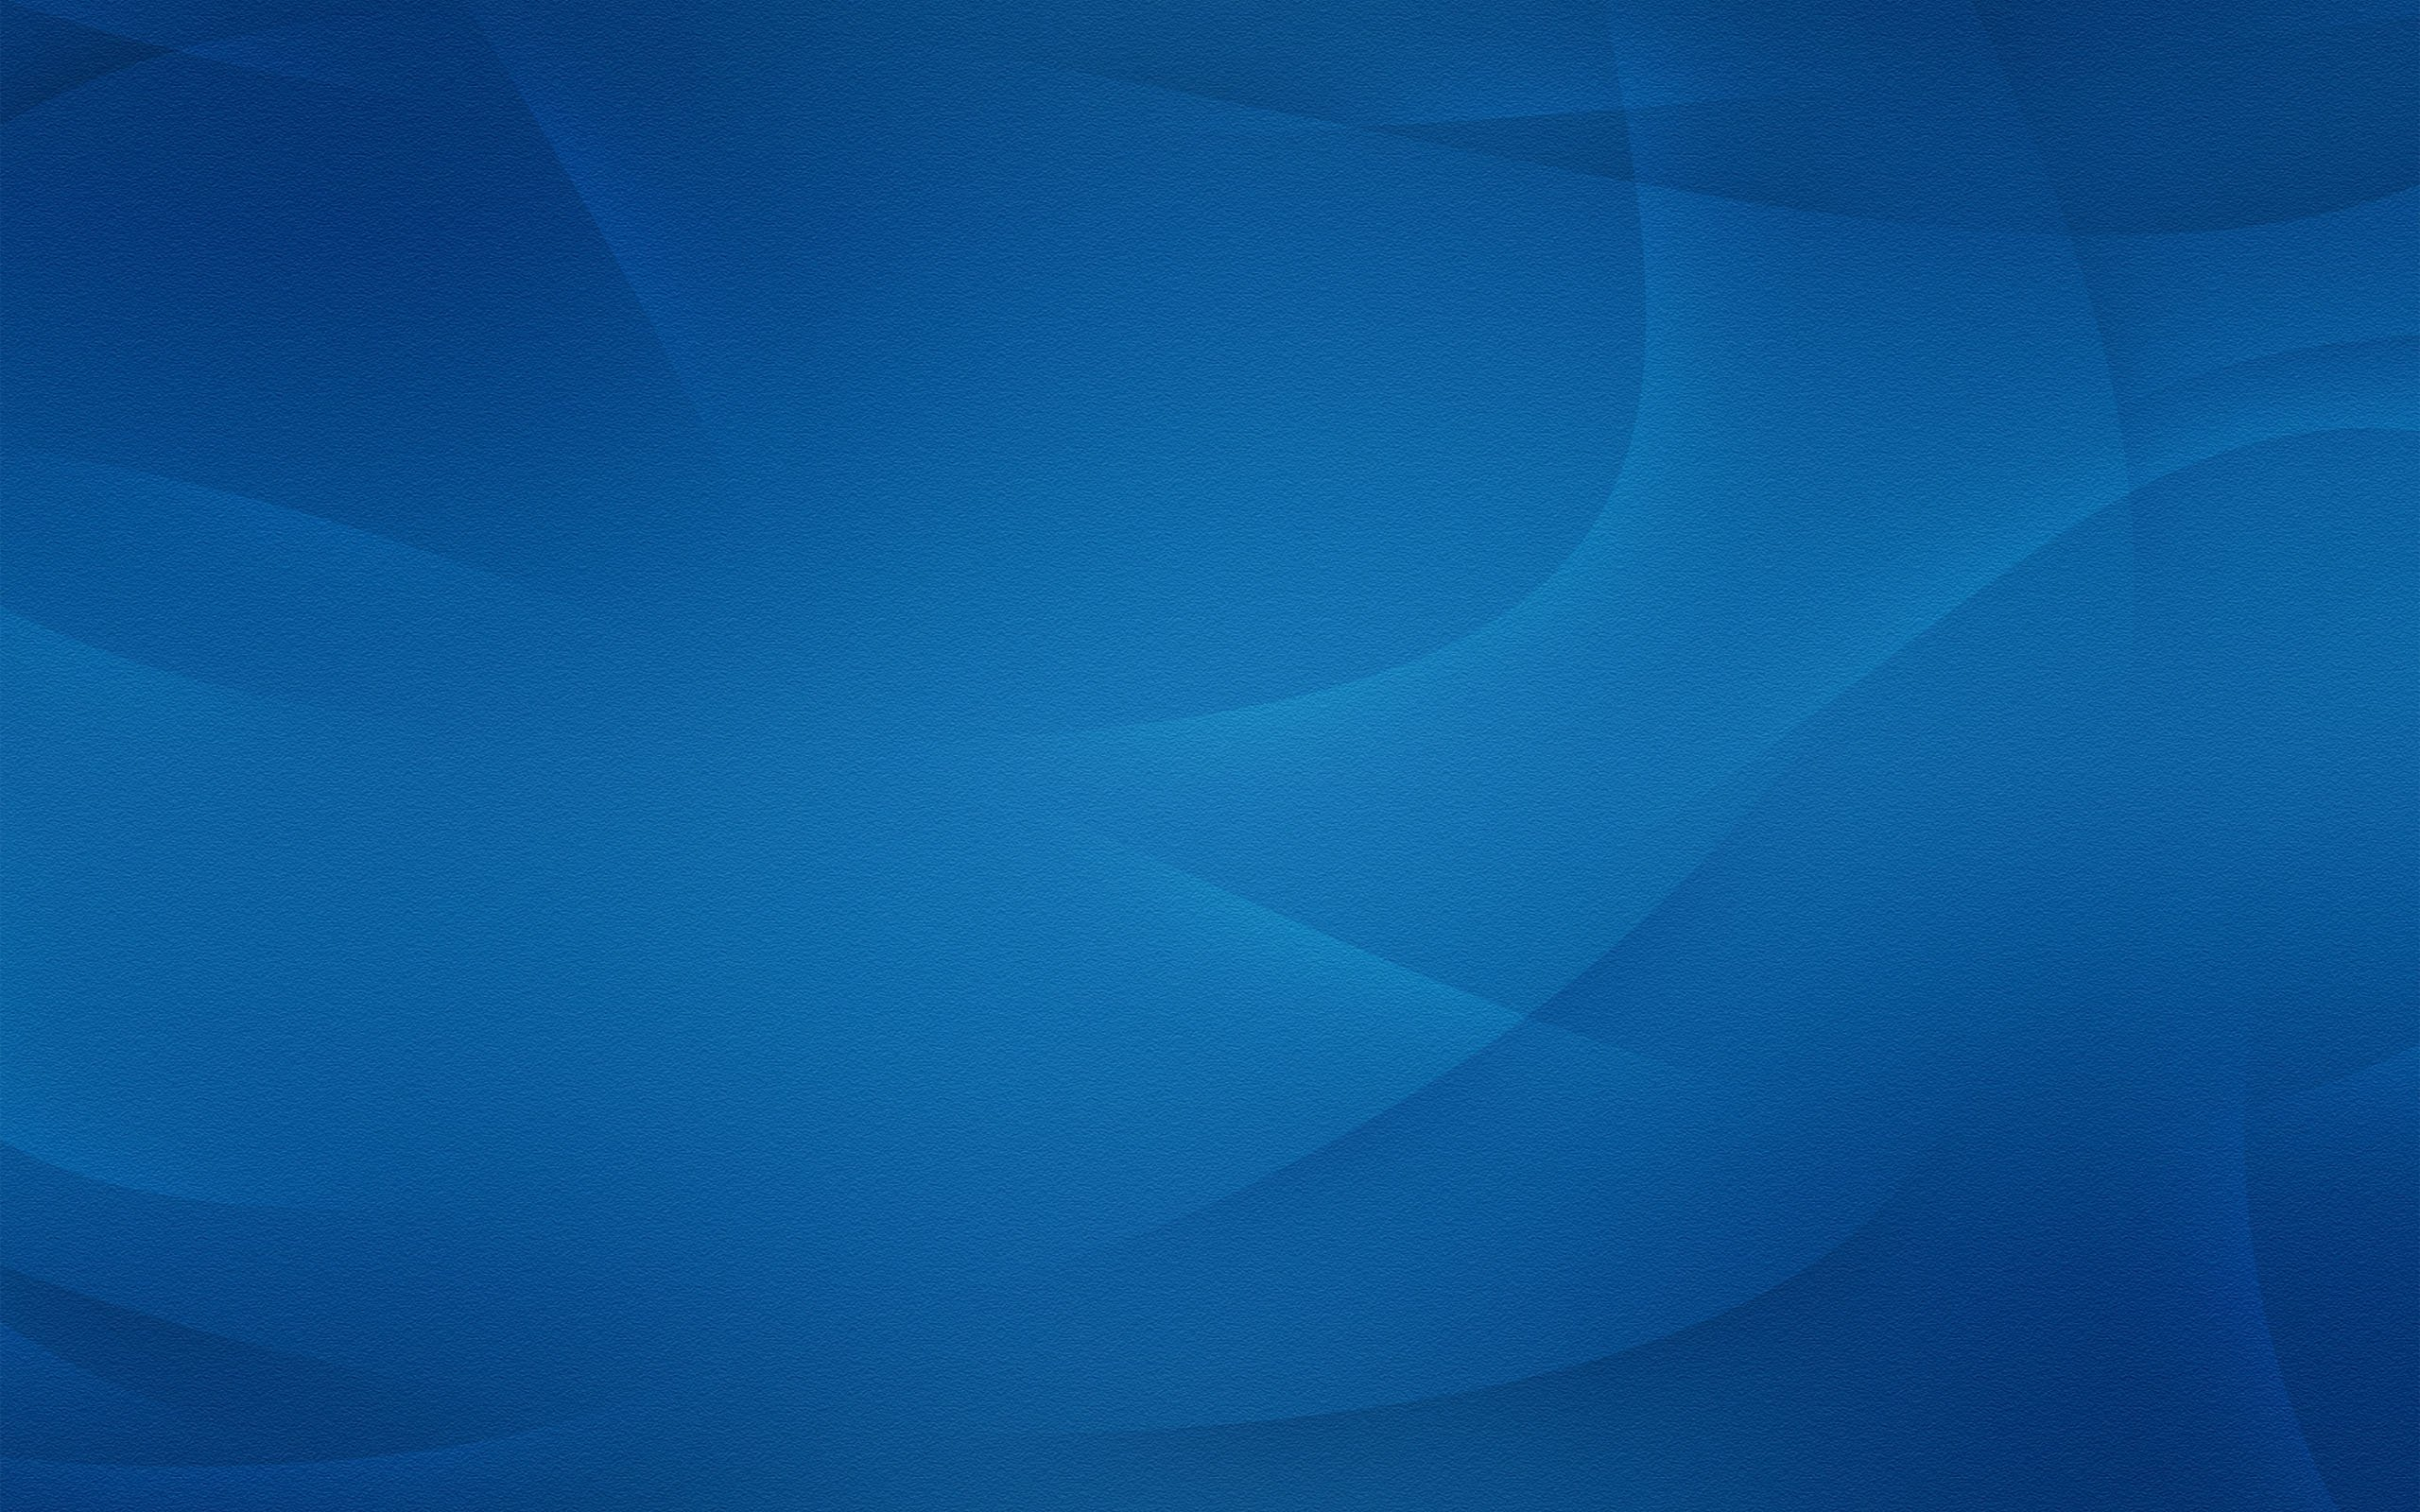 Mac Desktop Wallpapers HD Apple Mac Abstract Desktop Blue Aquawave 2560x1600